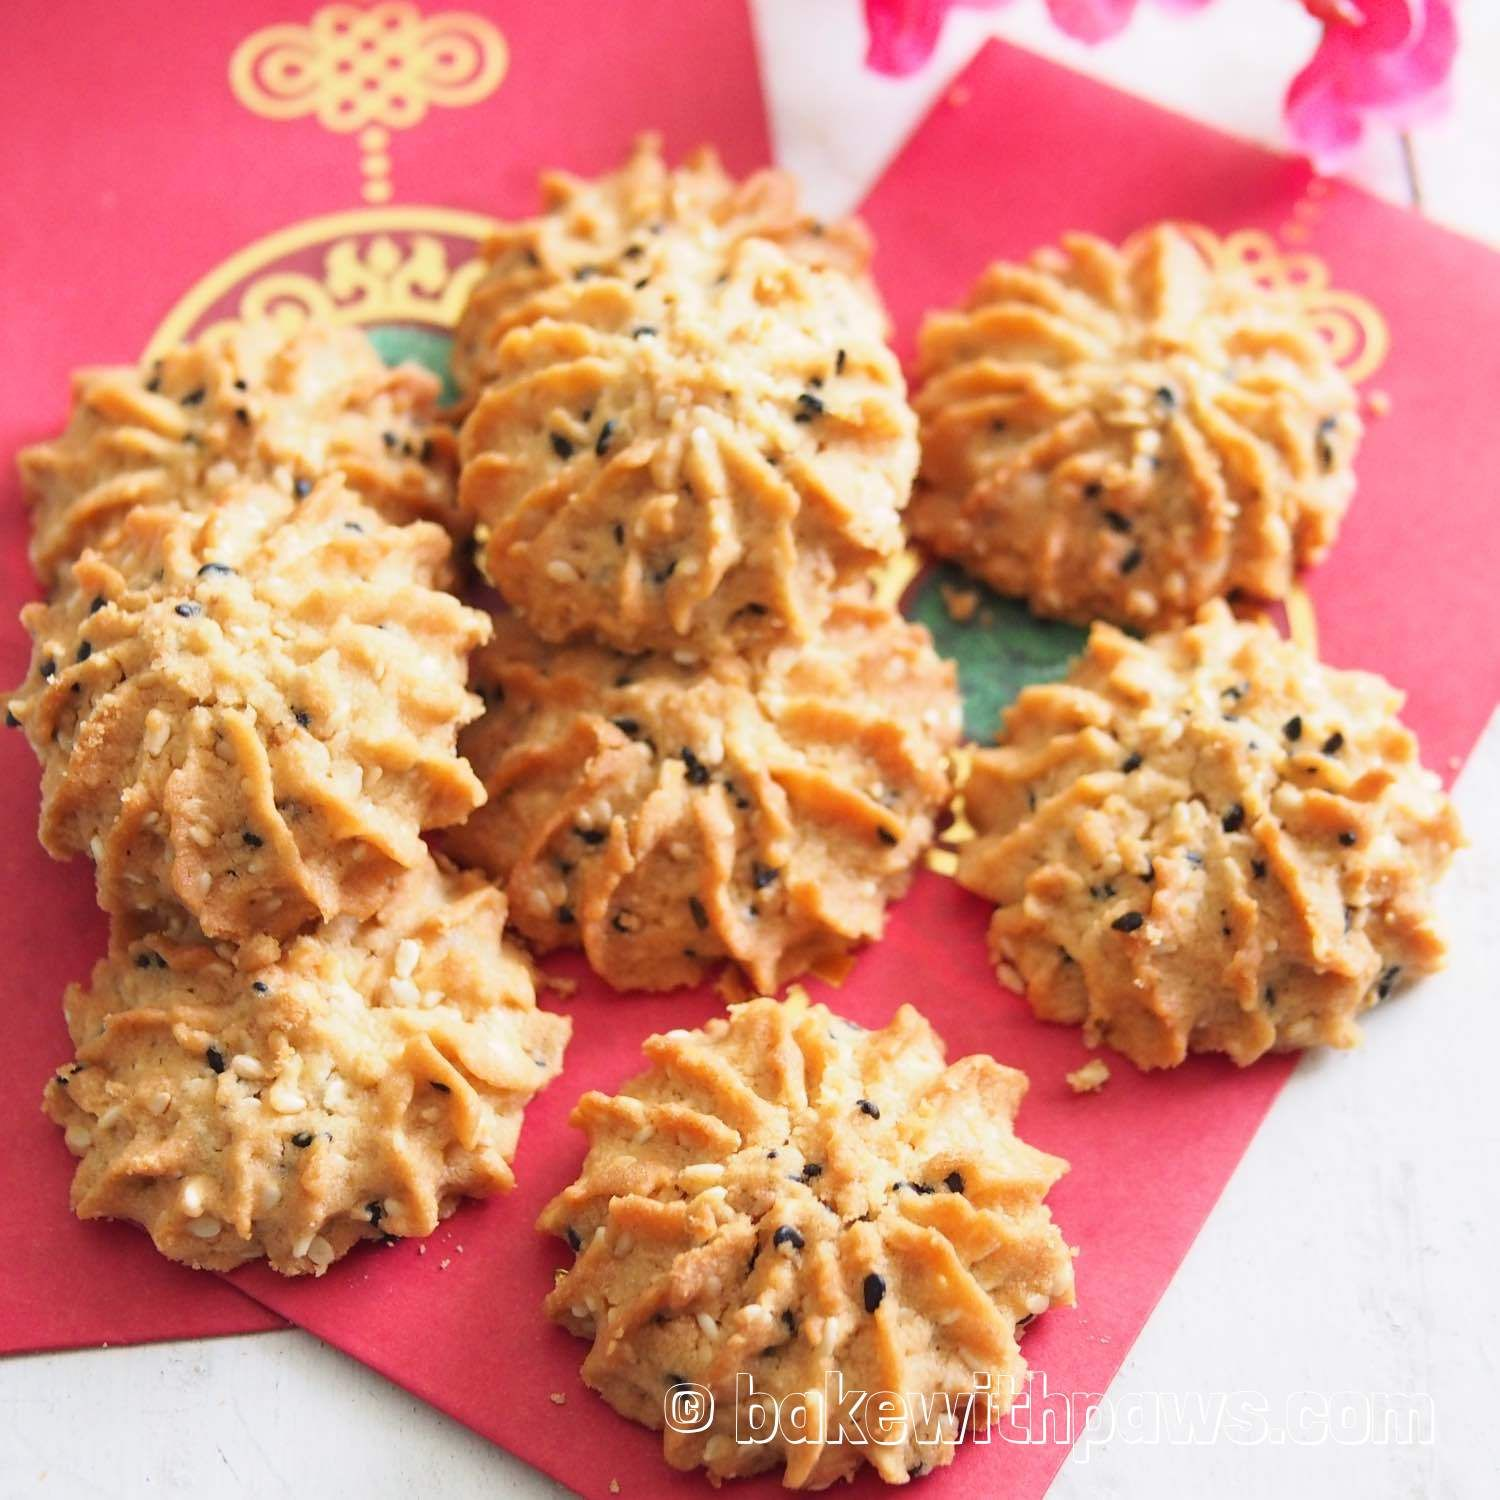 BAKE WITH PAWS Chinese New Year Cookies Seed cookies